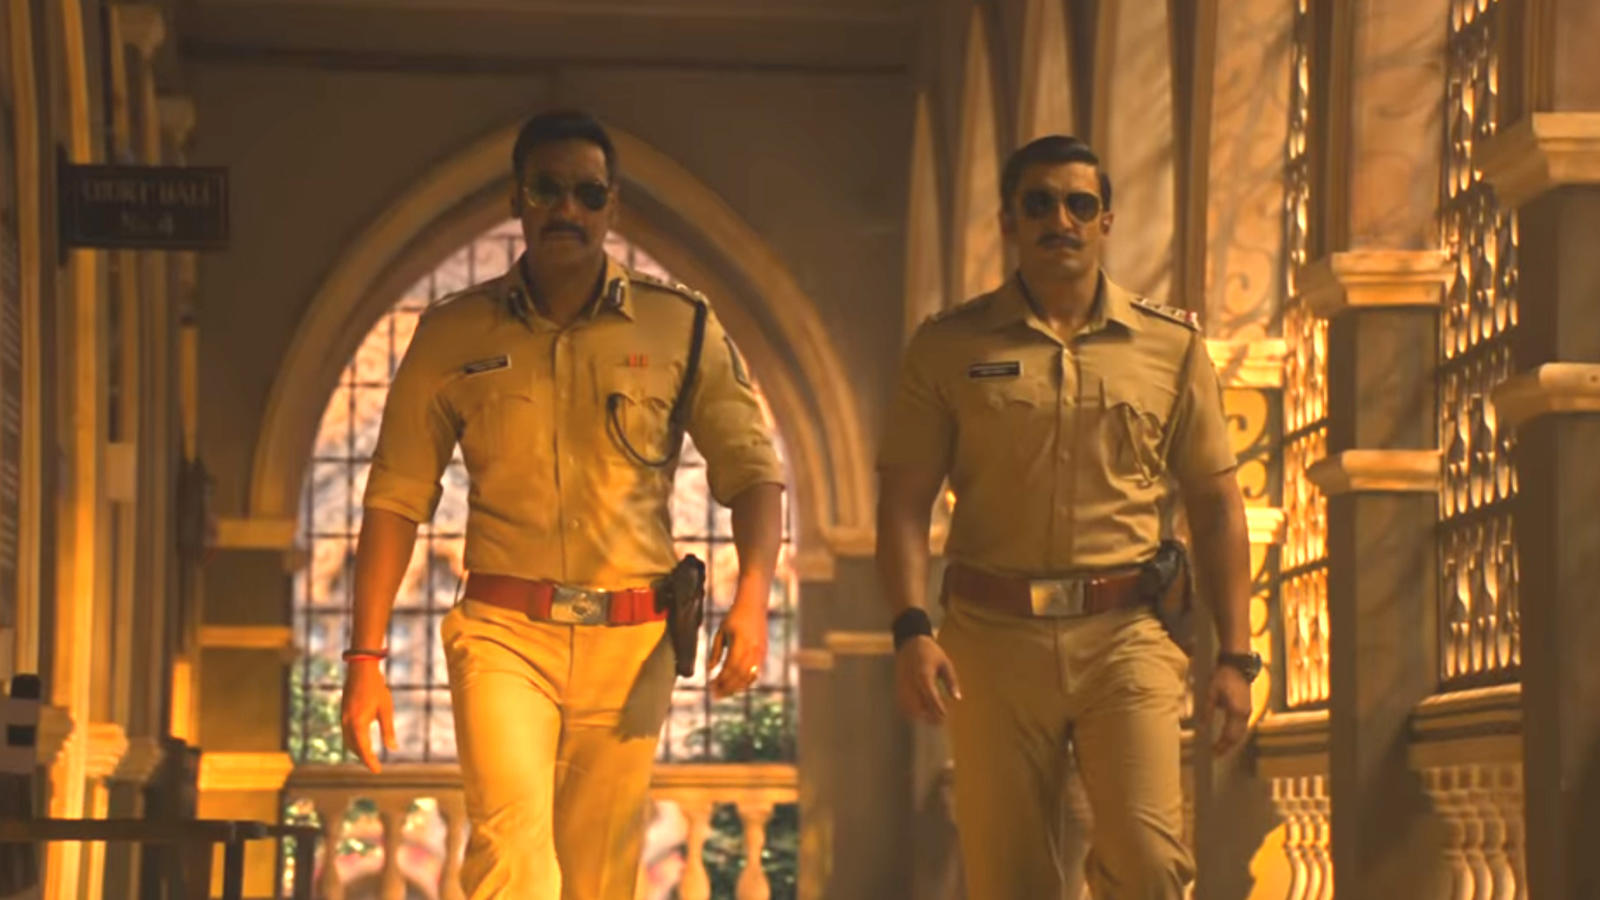 'Singham' Ajay Devgn and 'Simmba' Ranveer Singh in 'Mera Wala Dance' song